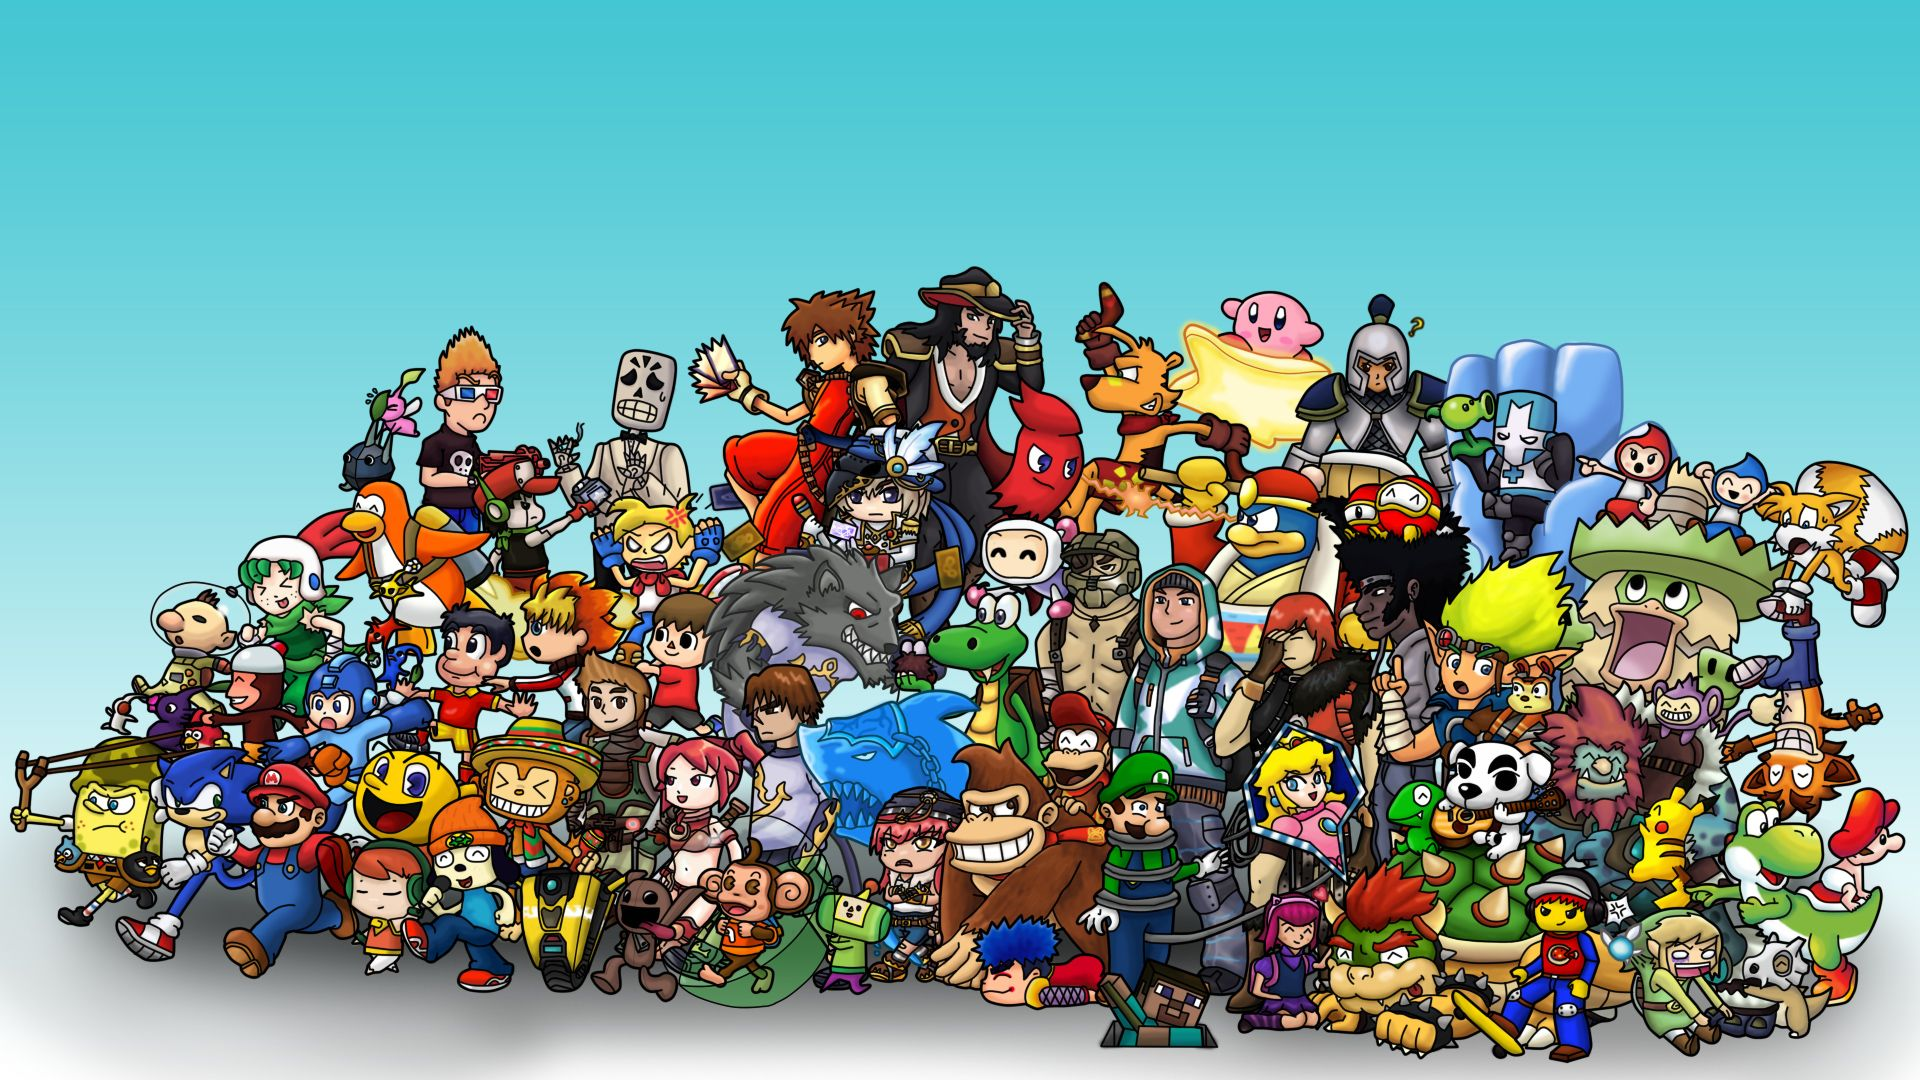 Video Game Wallpapers Classic Free Gaming Wallpapers Cartoon Wallpaper Video Game Backgrounds